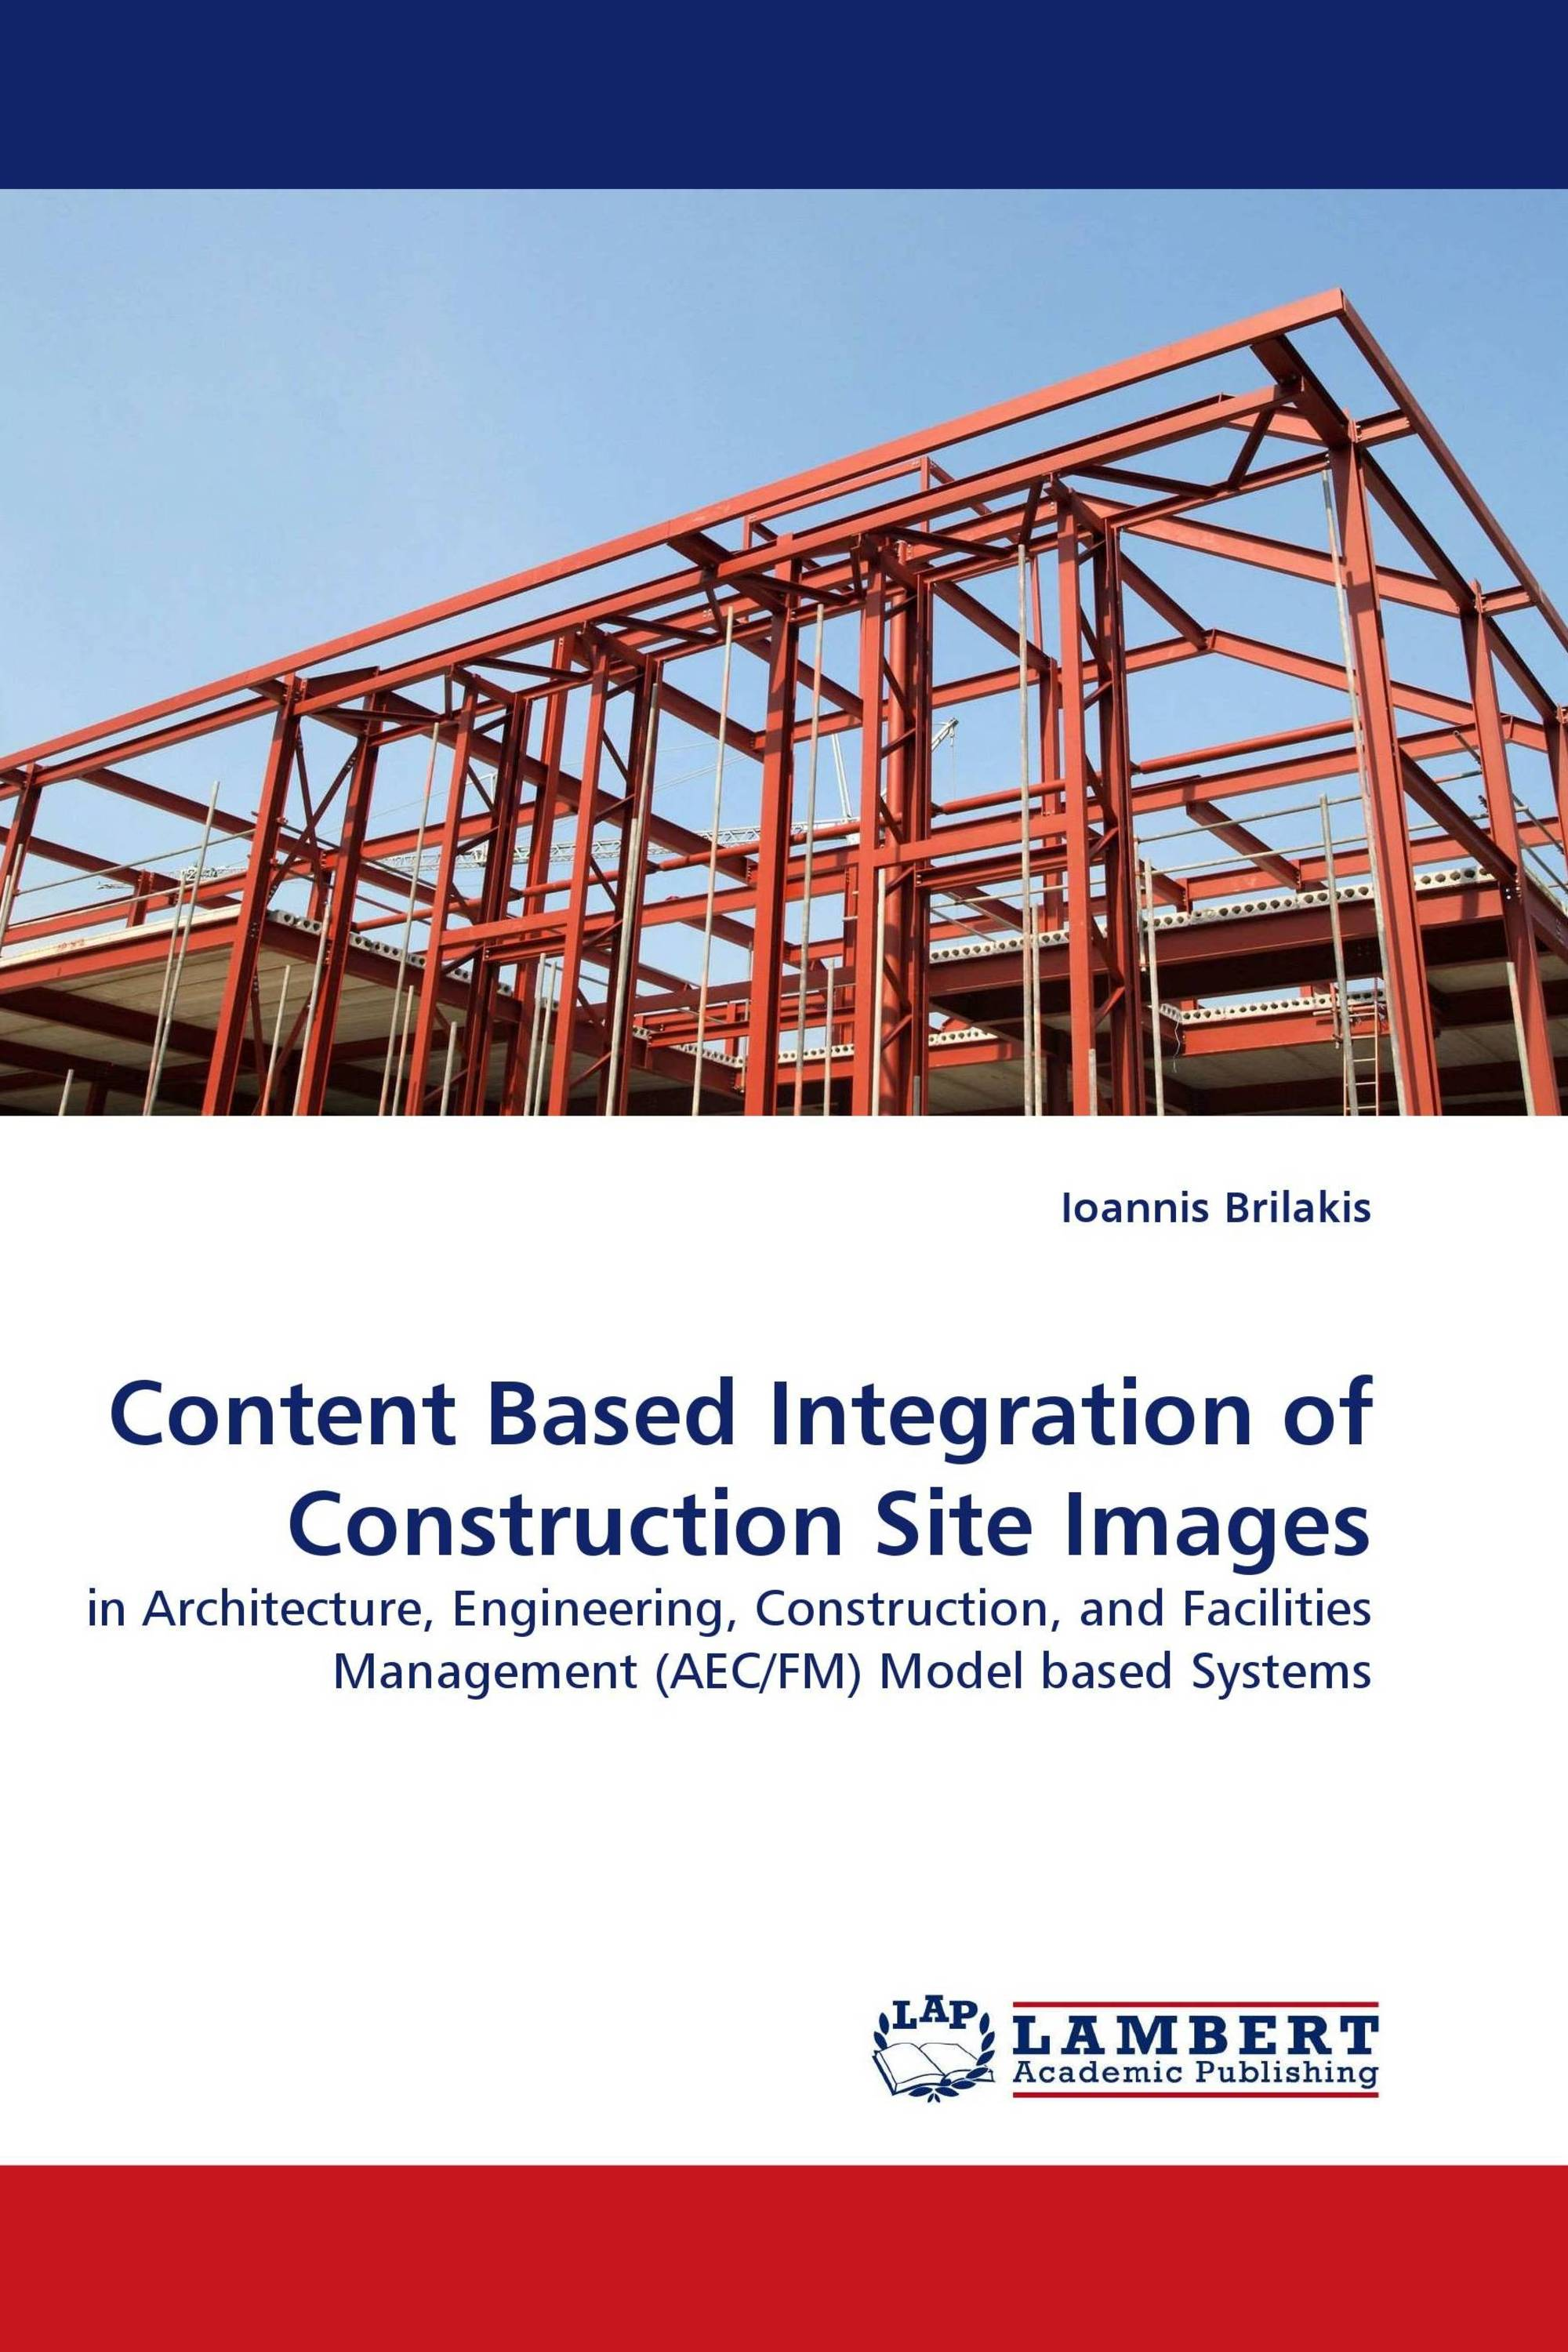 Content Based Integration of Construction Site Images